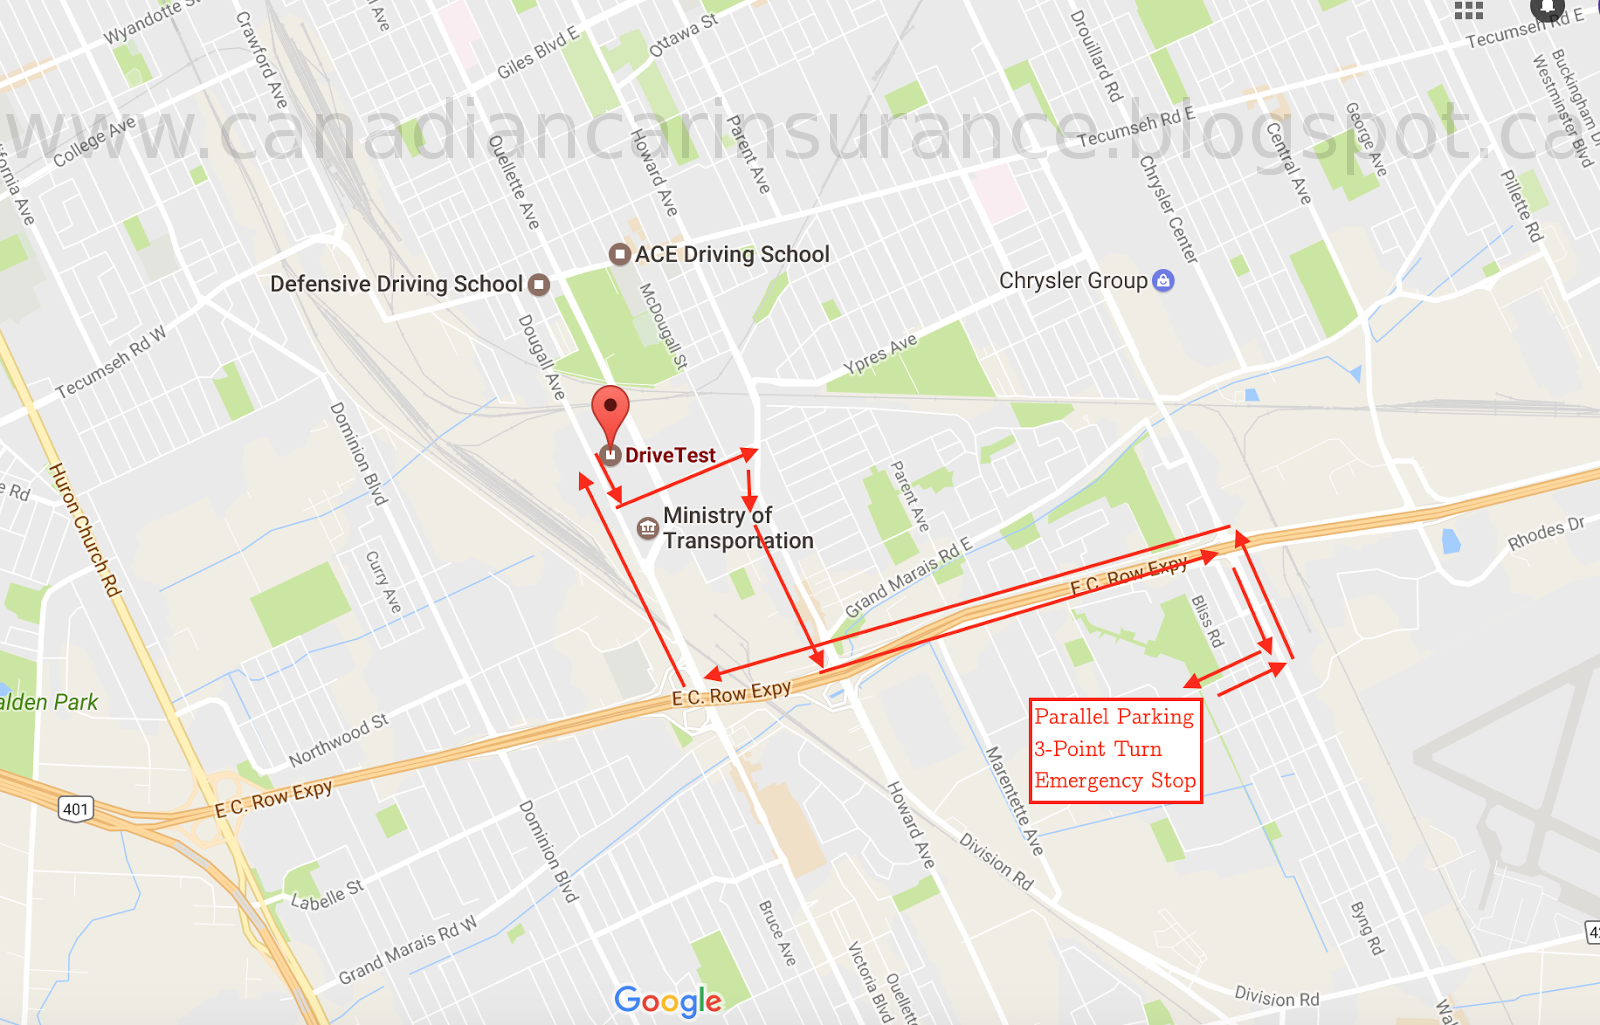 Windsor G Road Test Route Map